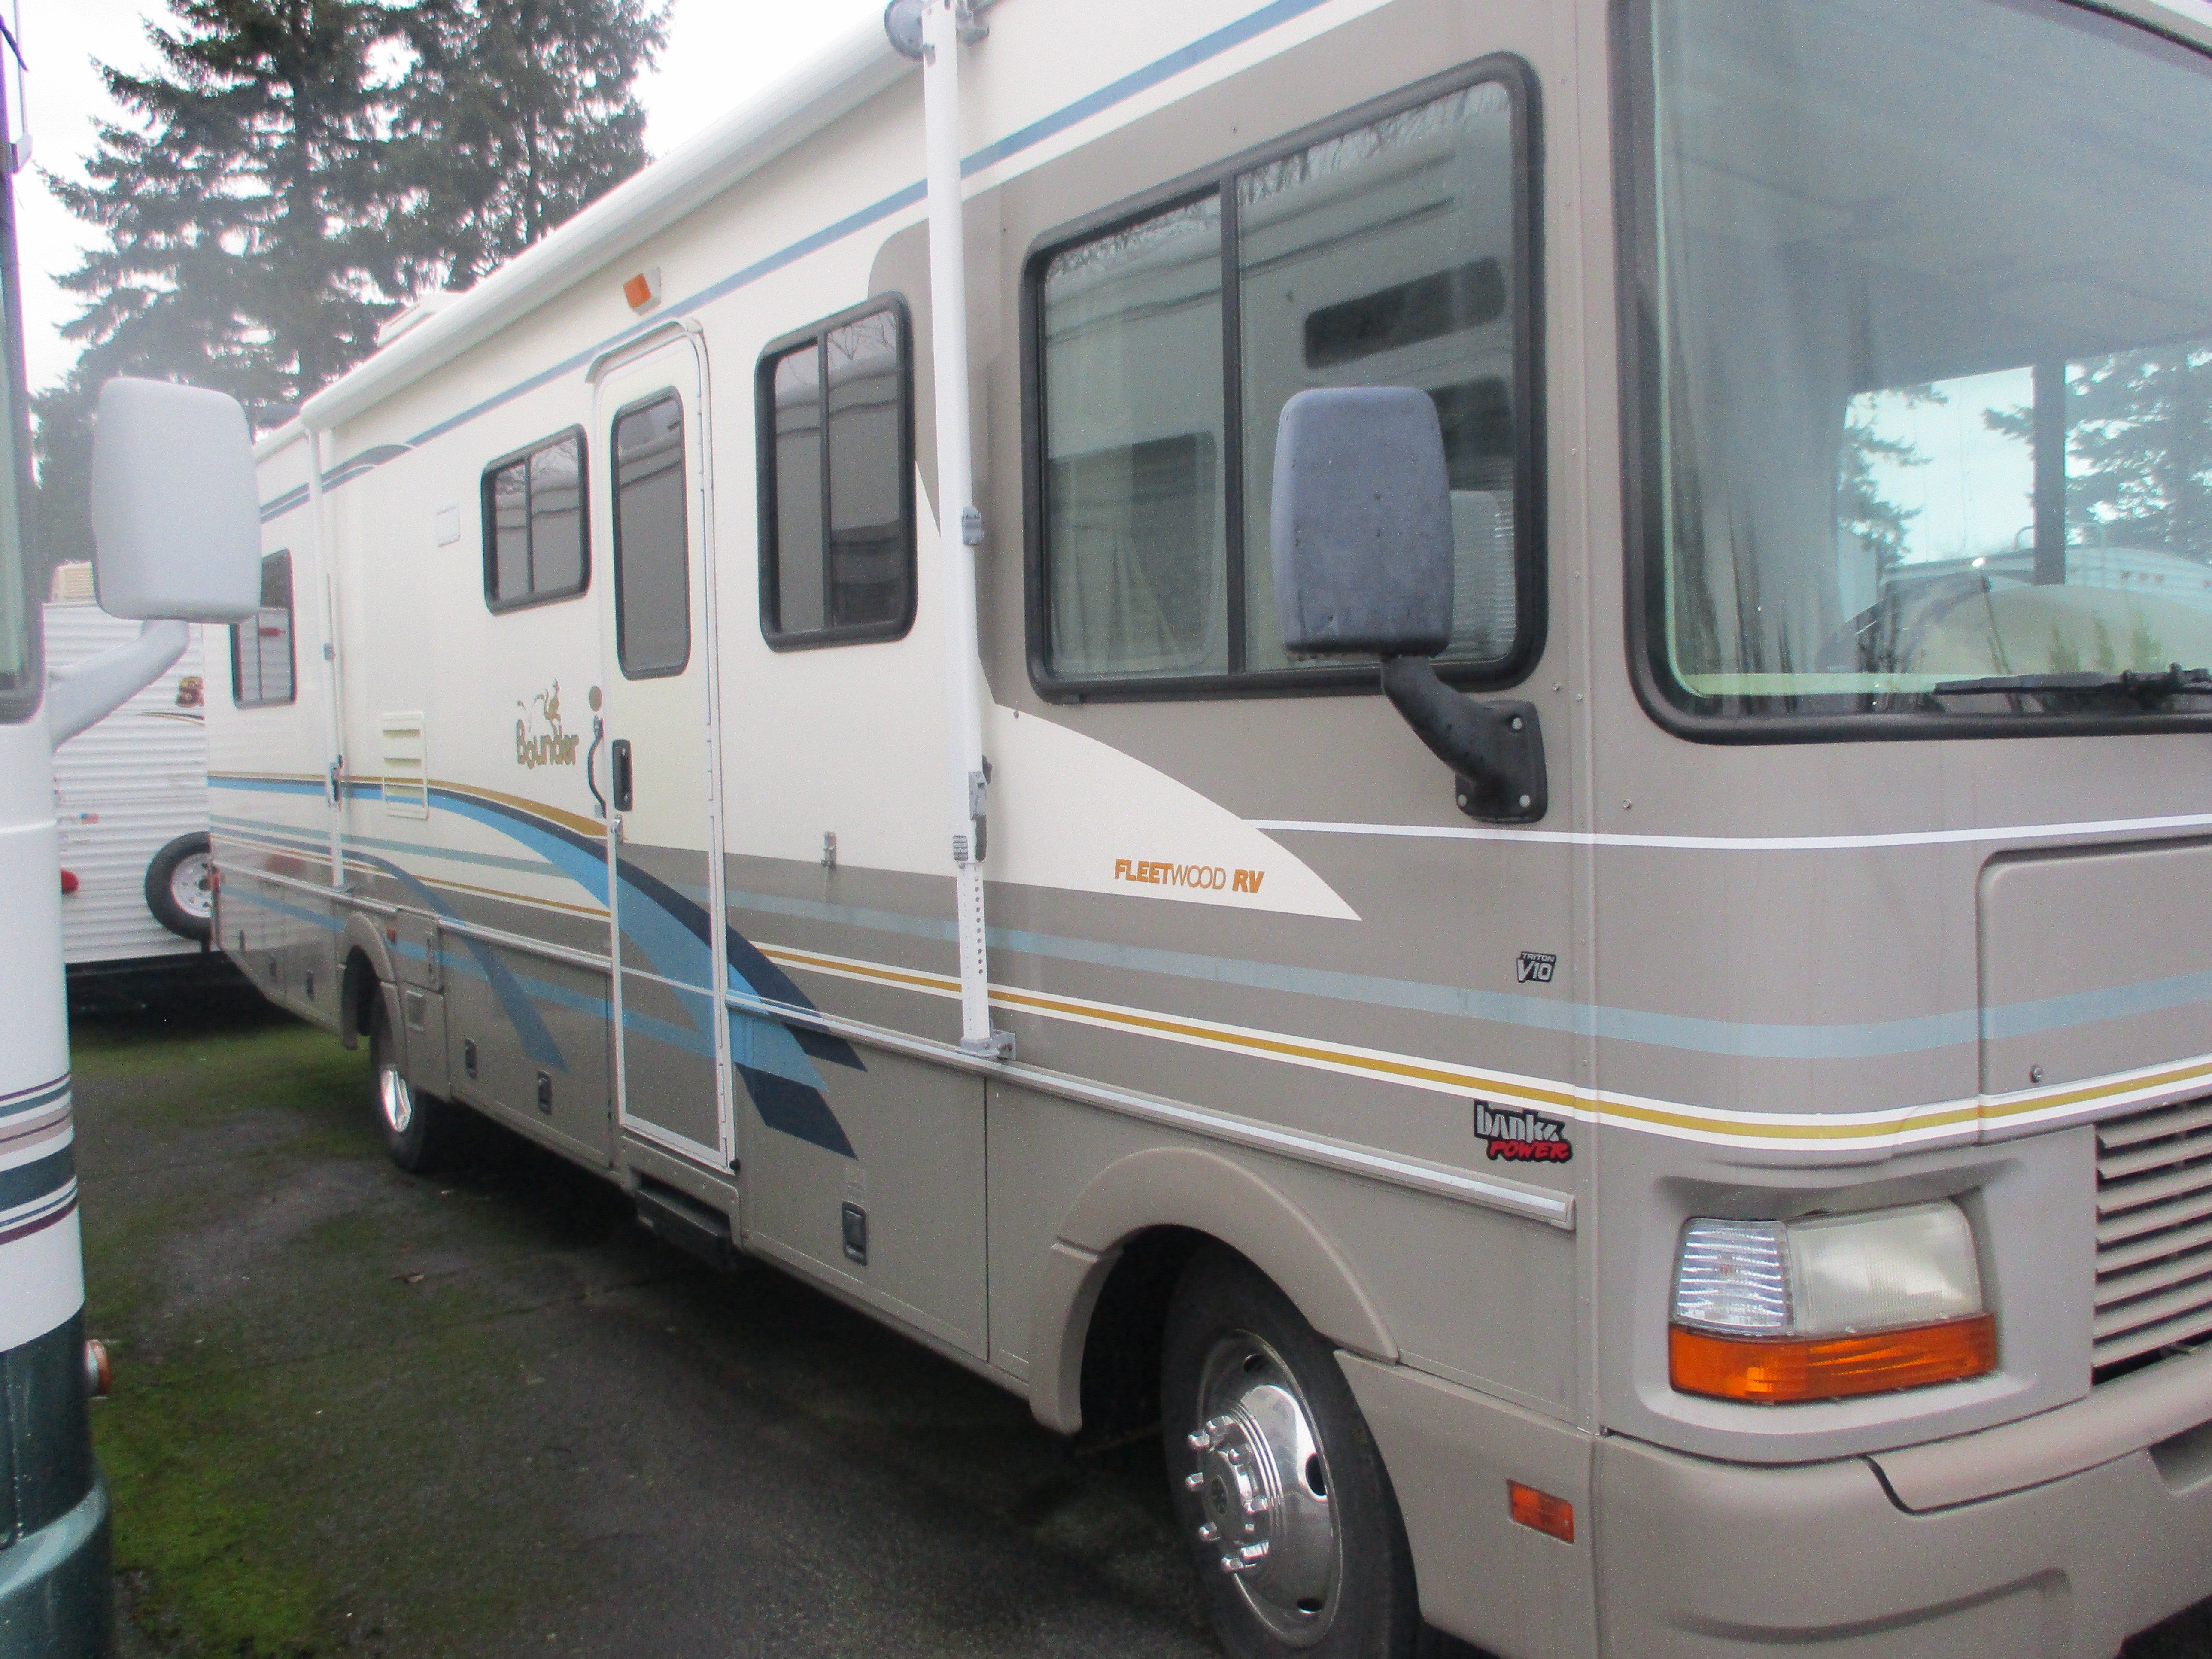 Used, 2000, Fleetwood, Bounder, RV - Class A